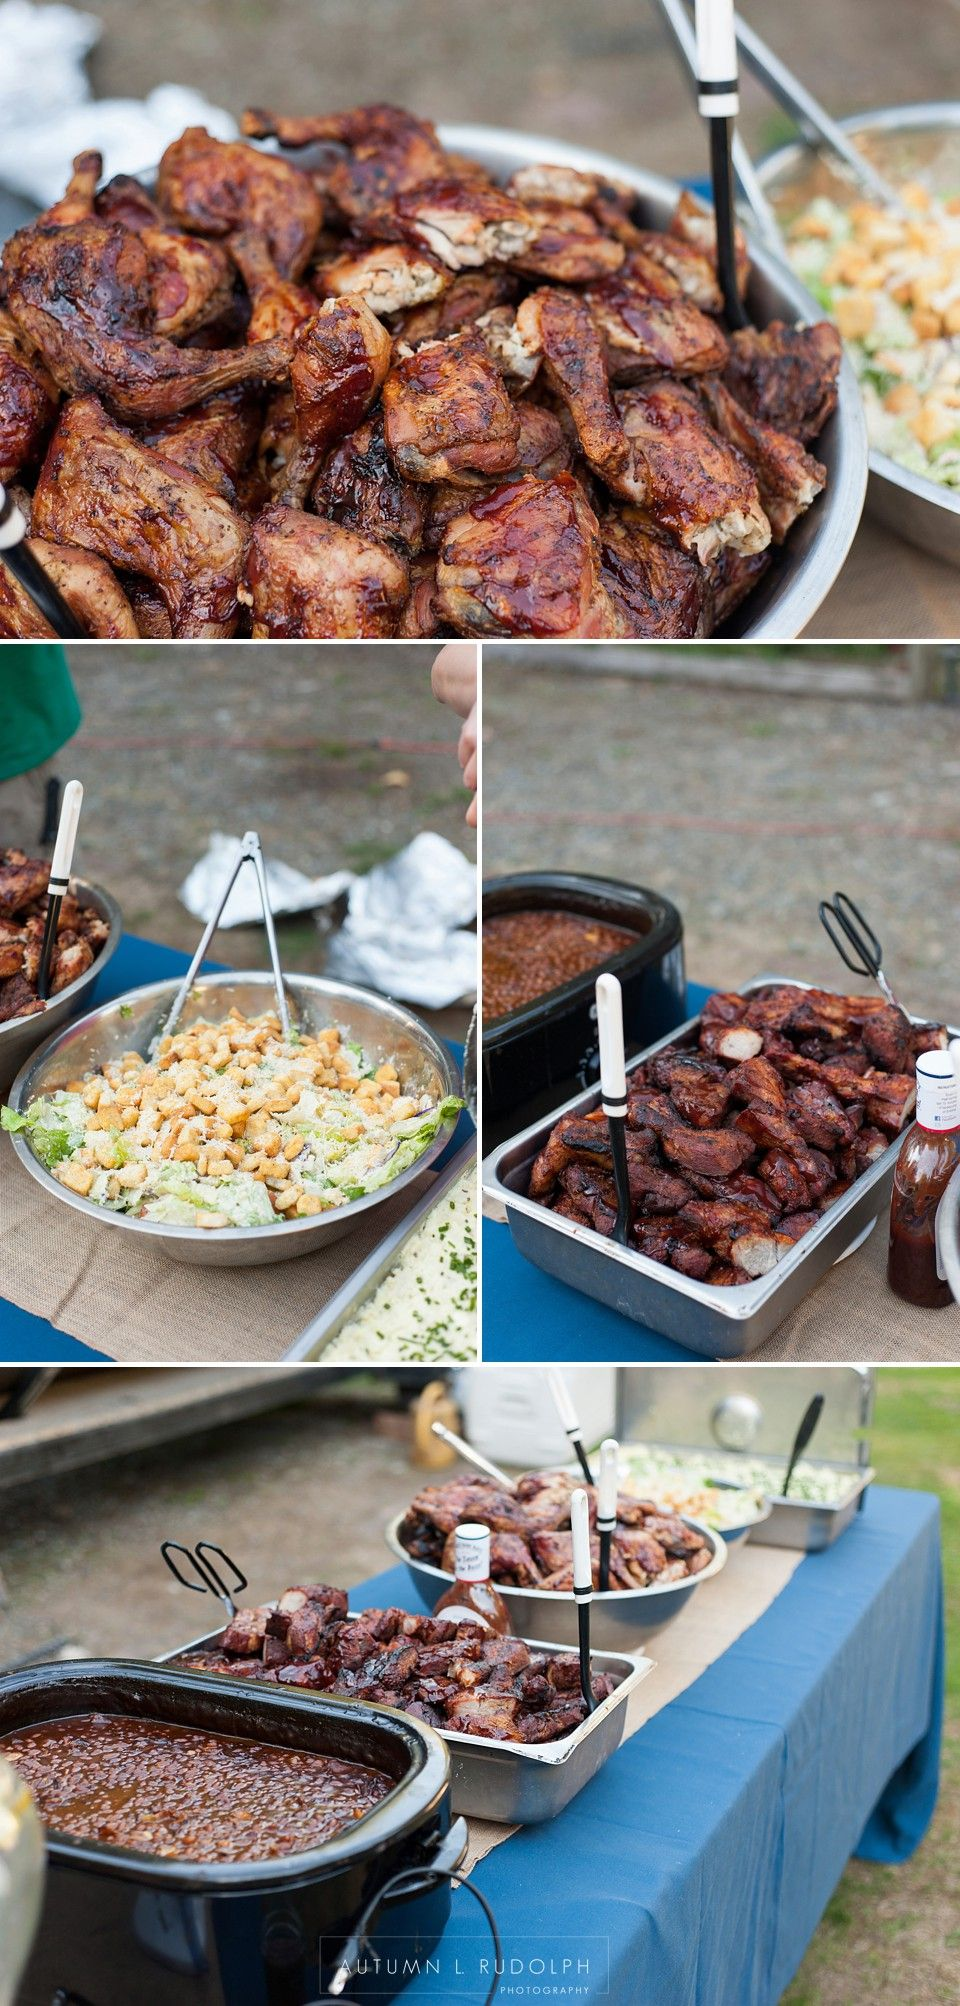 Backyard Wedding In Buckley | BBQ Catering | Autumn L Rudolph Photography